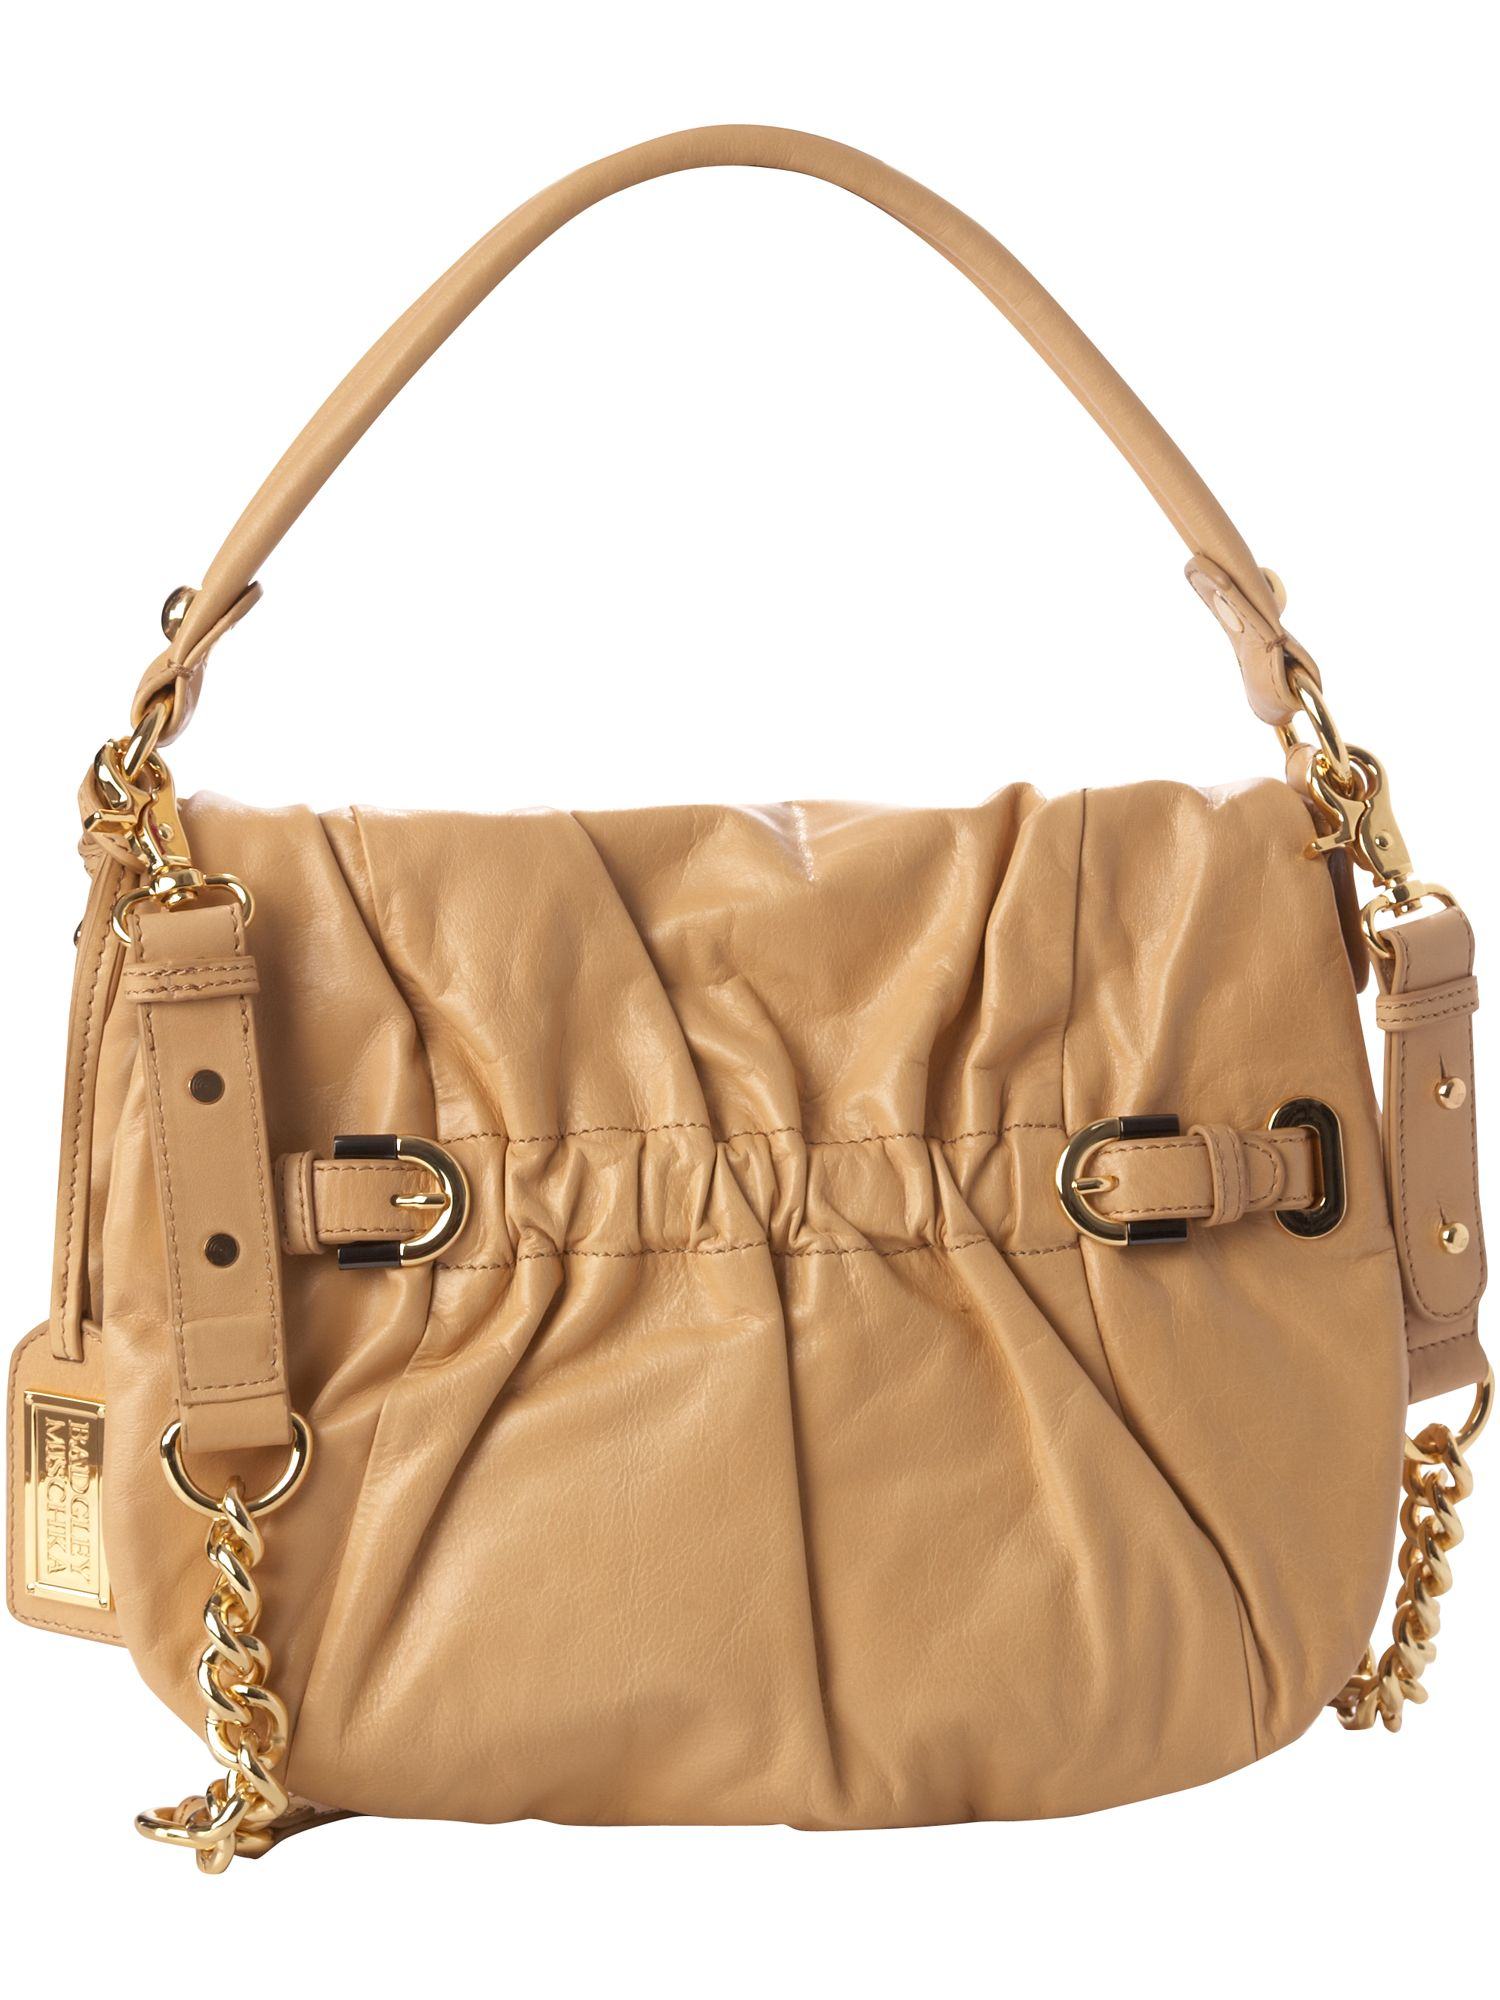 Arlette leather flapover bag.